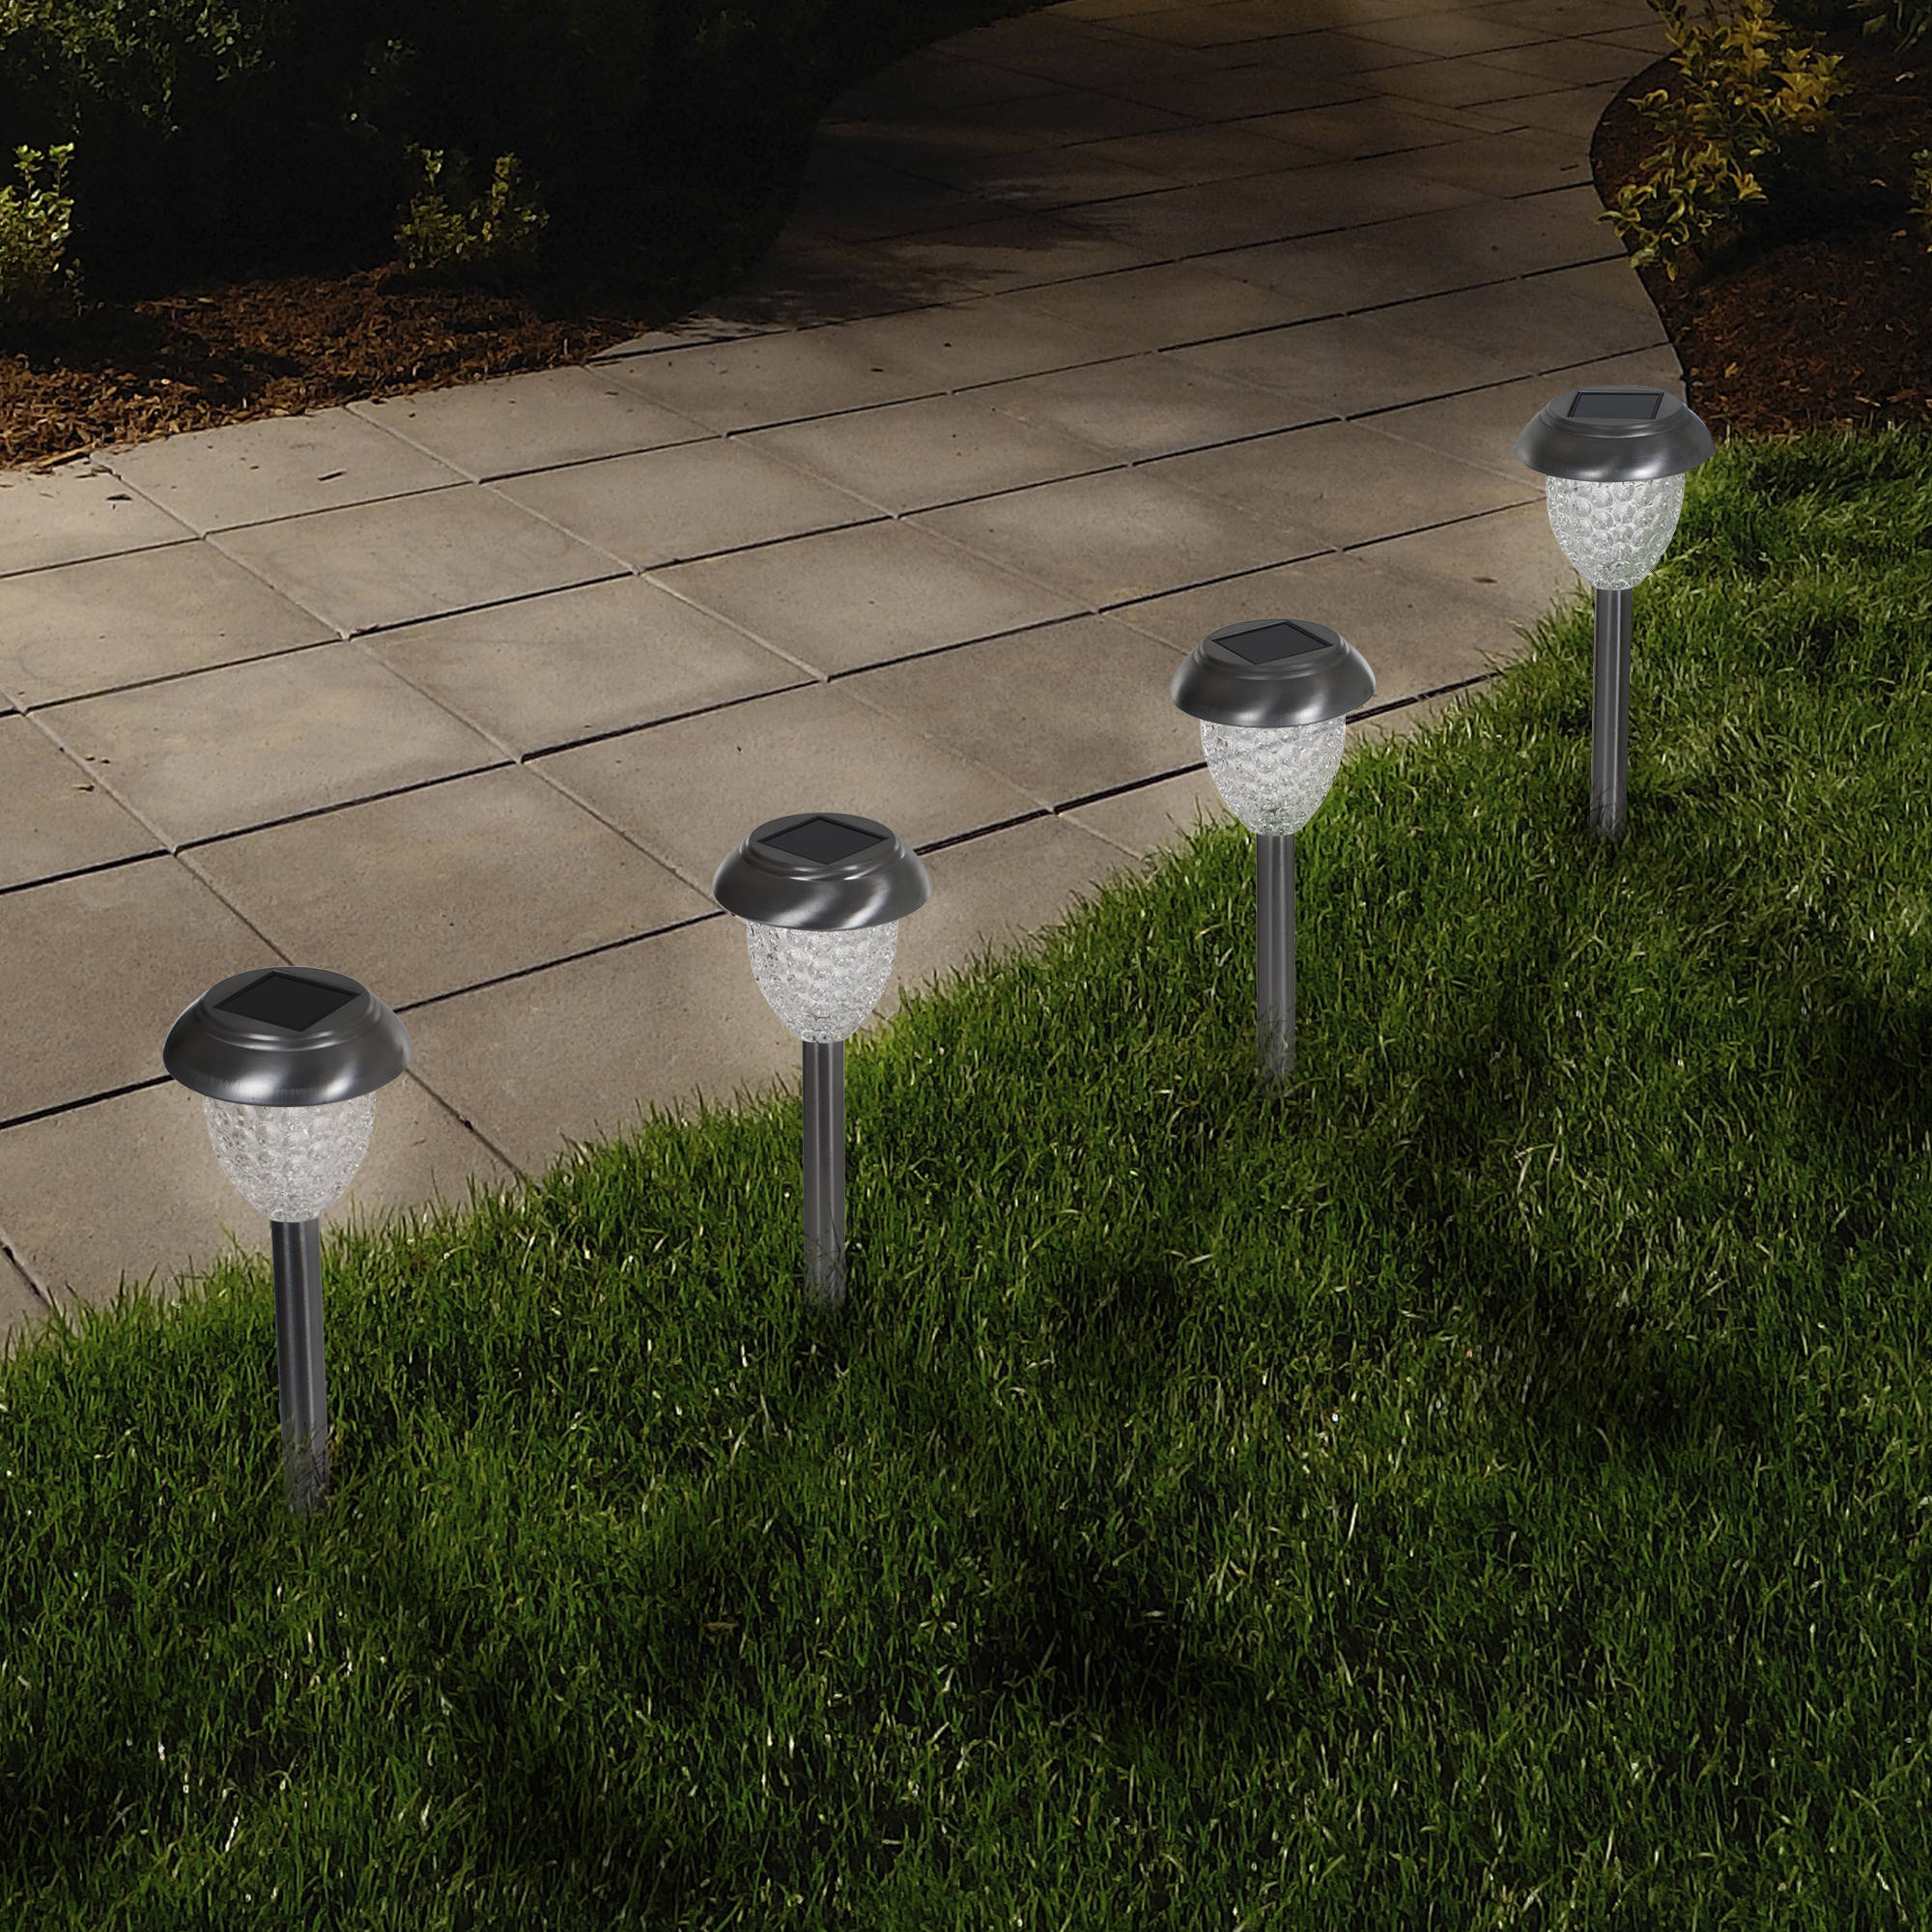 Pure Garden LED Solar Honeycomb Glass Pathway Lights - Set of 6